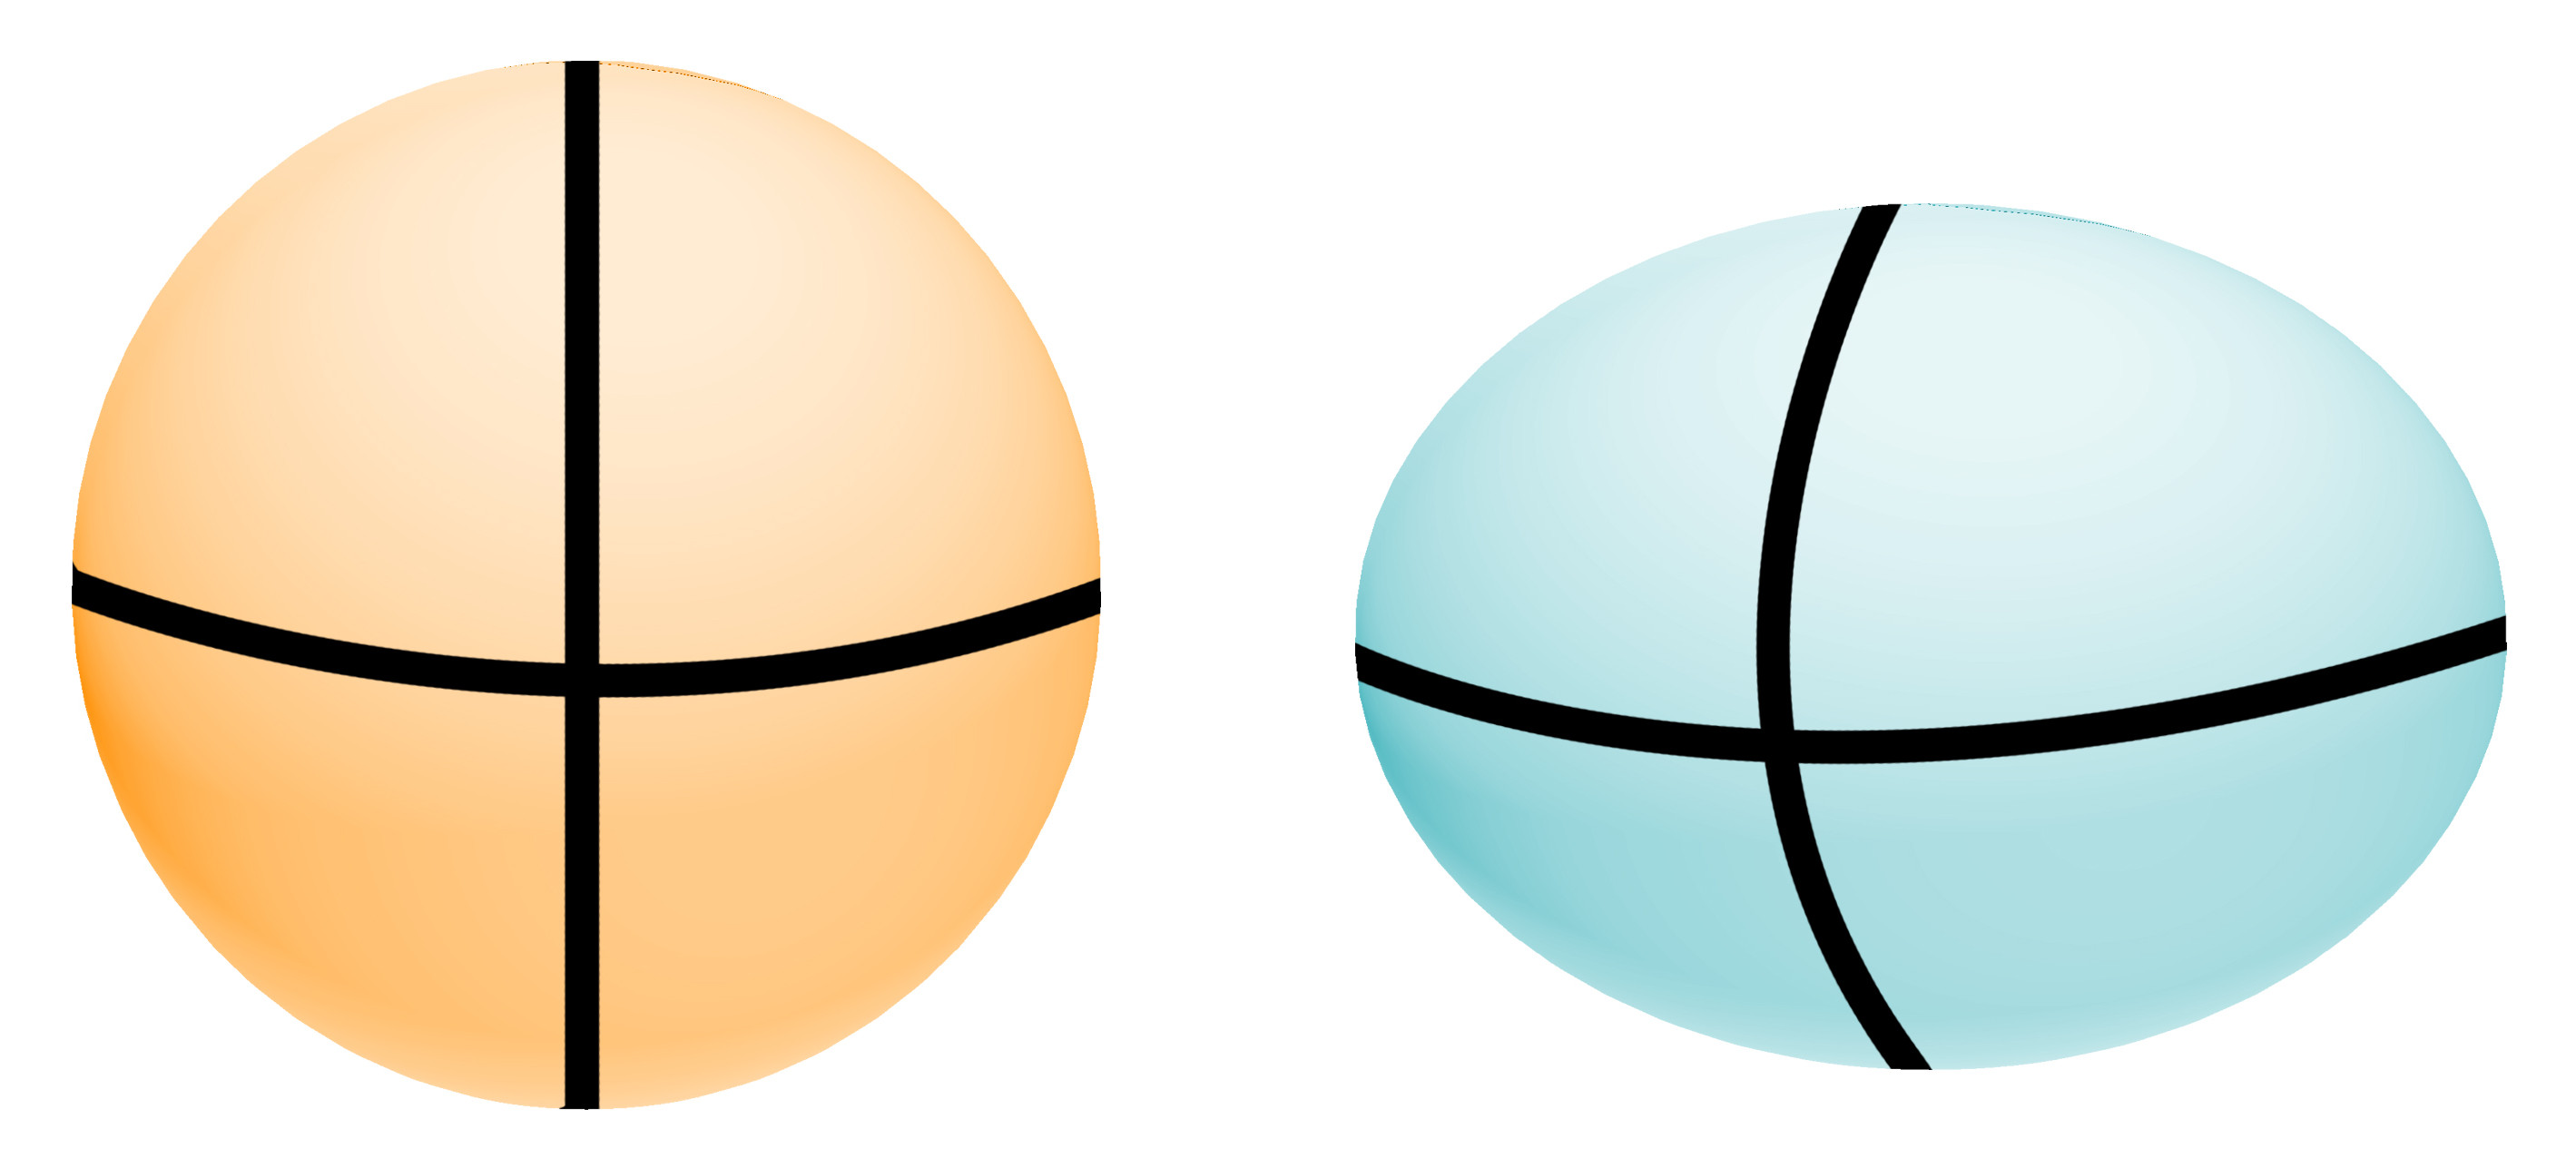 The orange shape has no astigmatism, and the blue shape does have astigmatism. A toric lens corrects this astigmatism because it has 2 different powers to correct the 2 different curvatures.